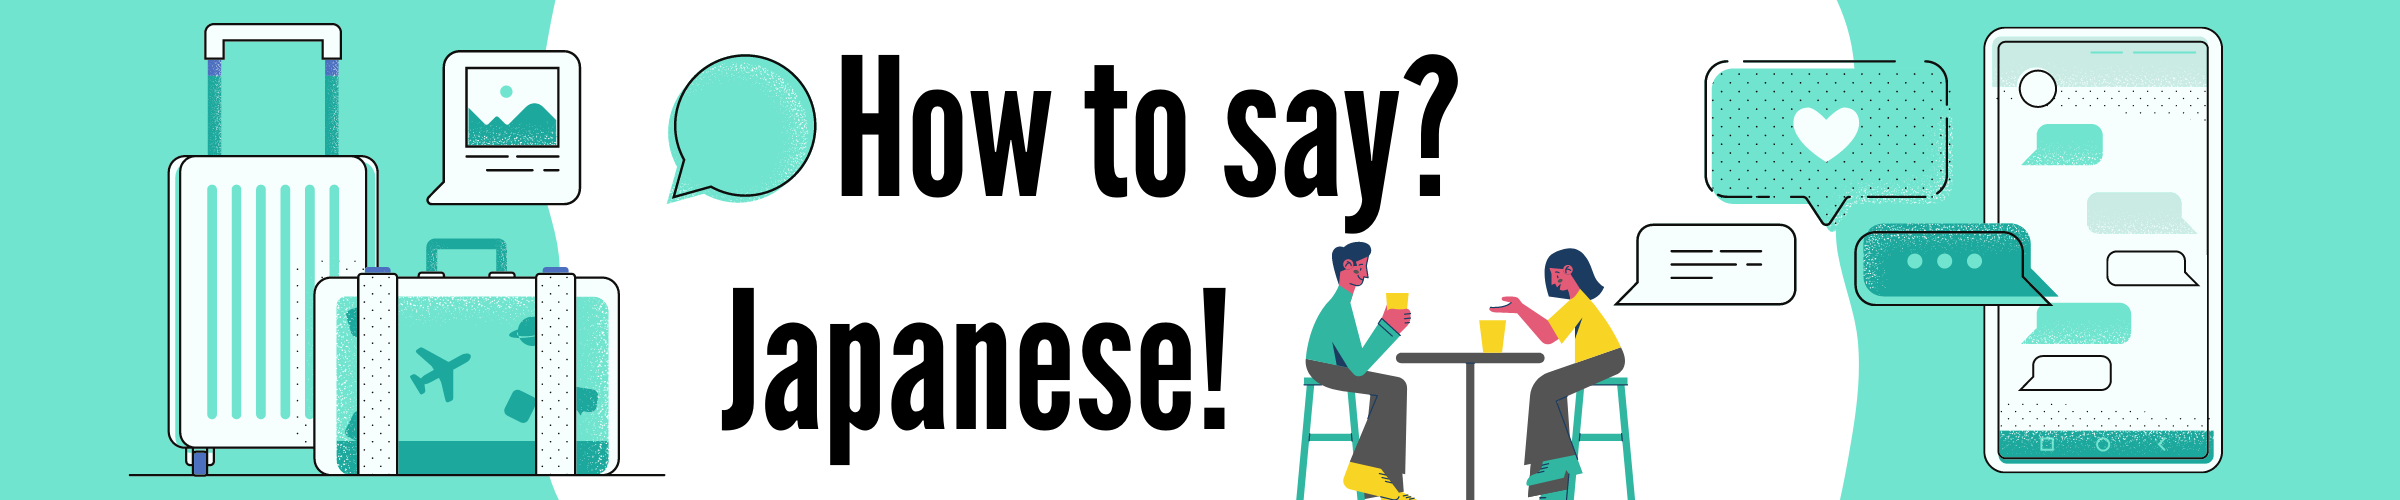 How to say?  Japanese!